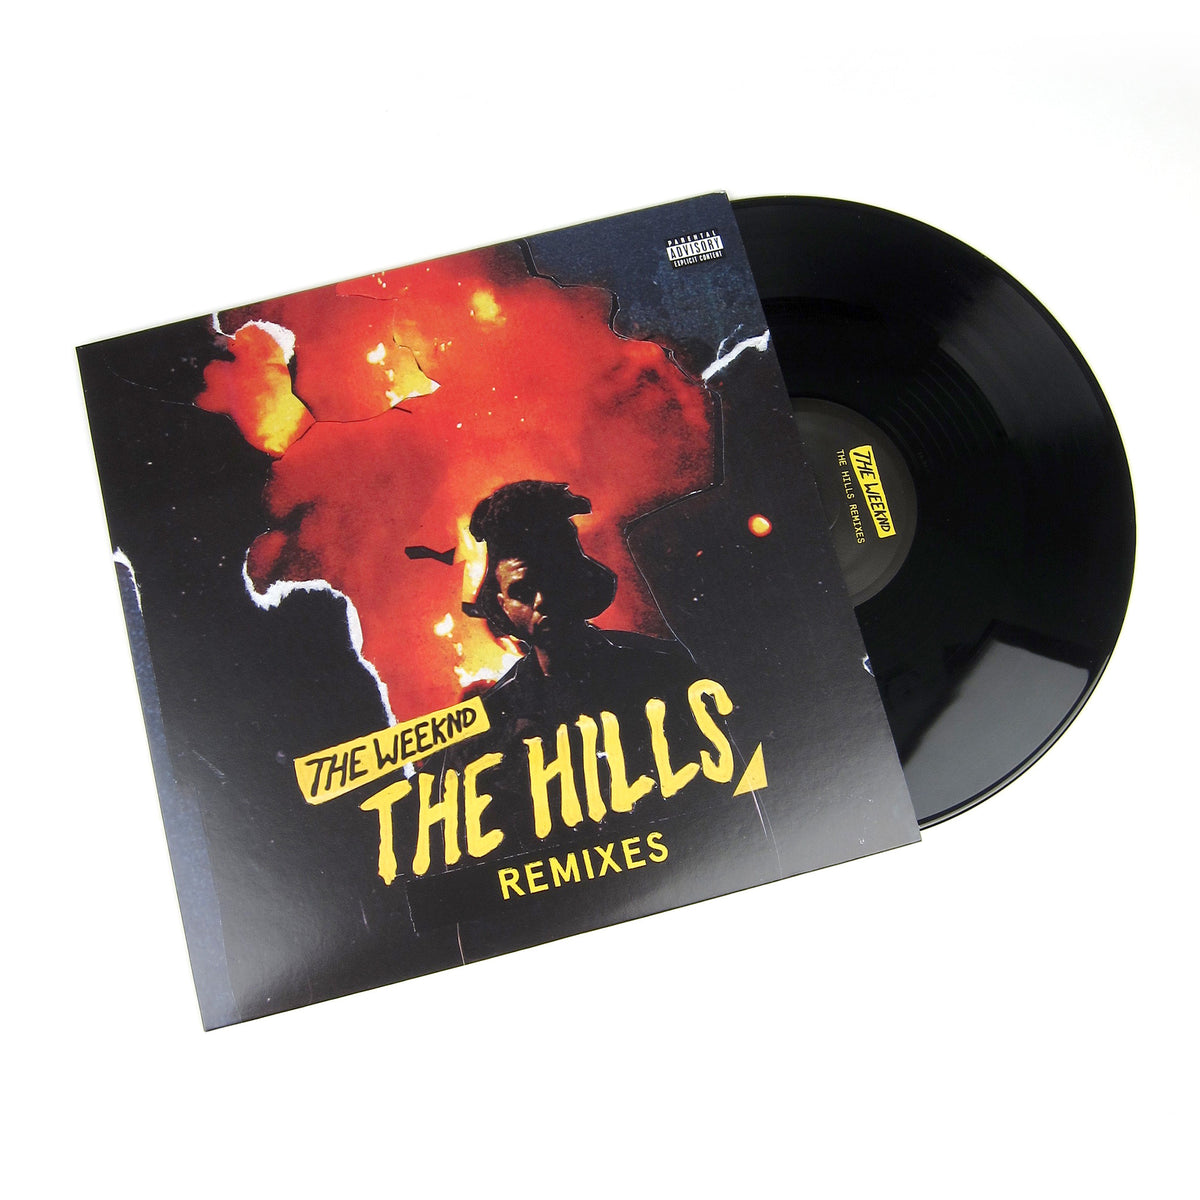 "The Weeknd: The Hills Remixes Vinyl 12"" (Record Store Day)"